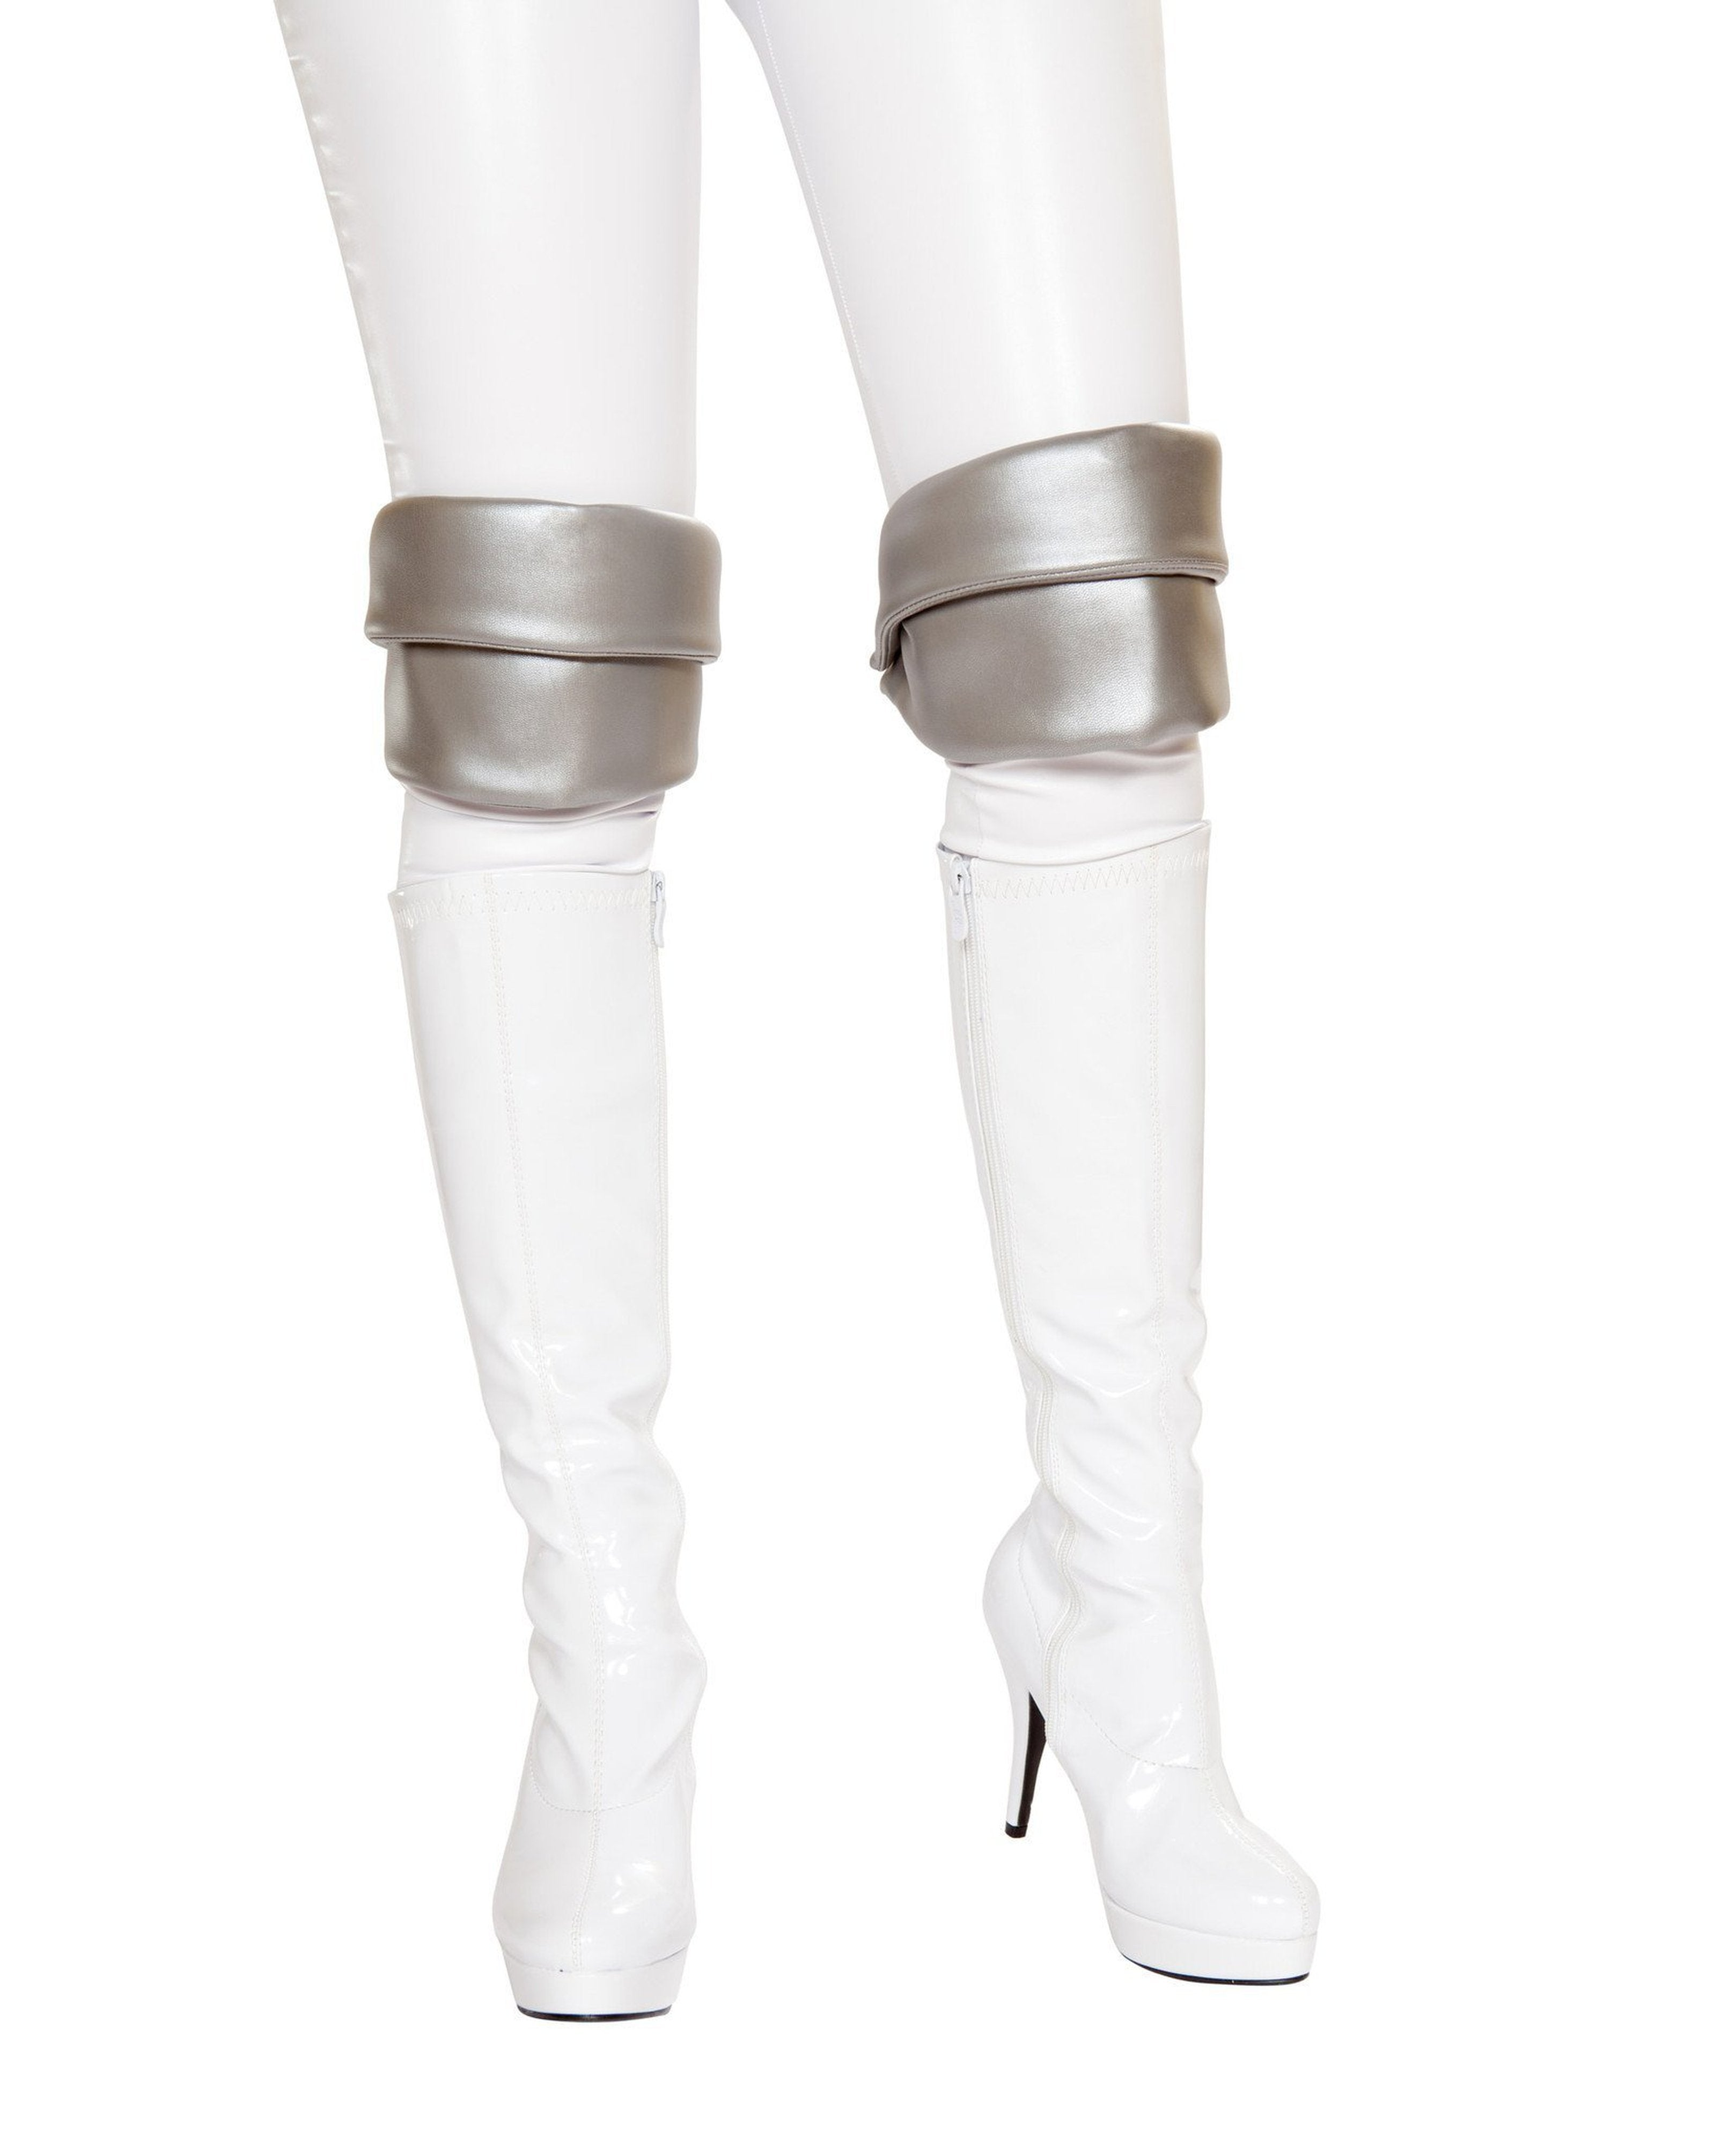 Silver Knee Pads costumes Size One SizeColor GreyNakees